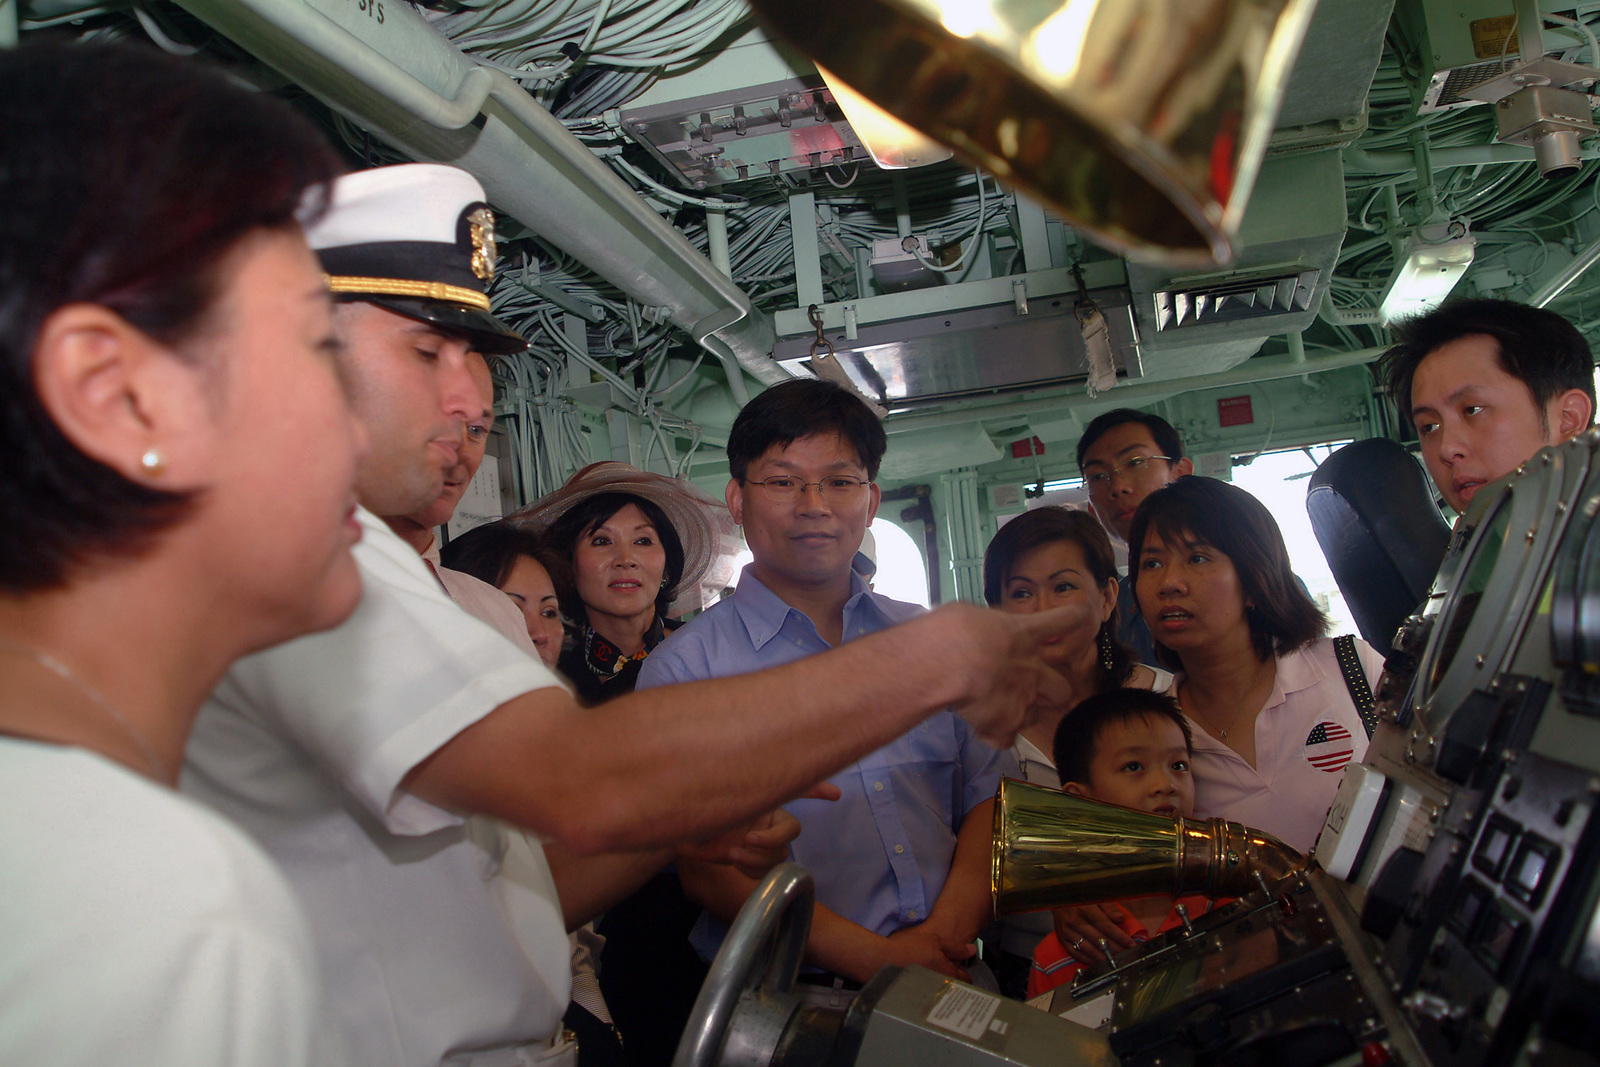 A US Navy (USN) Sailor (left) gives members of the People's Army of Vietnam (PAVN) and their family a tour aboard the USN Avenger Class Mine Countermeasures Vessels USS PATRIOT (MCM 7) during their visit in Ho Chi Minh City, Vietnam (VNM). During their stay, the USN Sailors will interact with the Vietnamese people through a variety of events, including a community service project at a local orphanage. Visits to Vietnam by USN ships symbolize the continuation of relations between the two nations